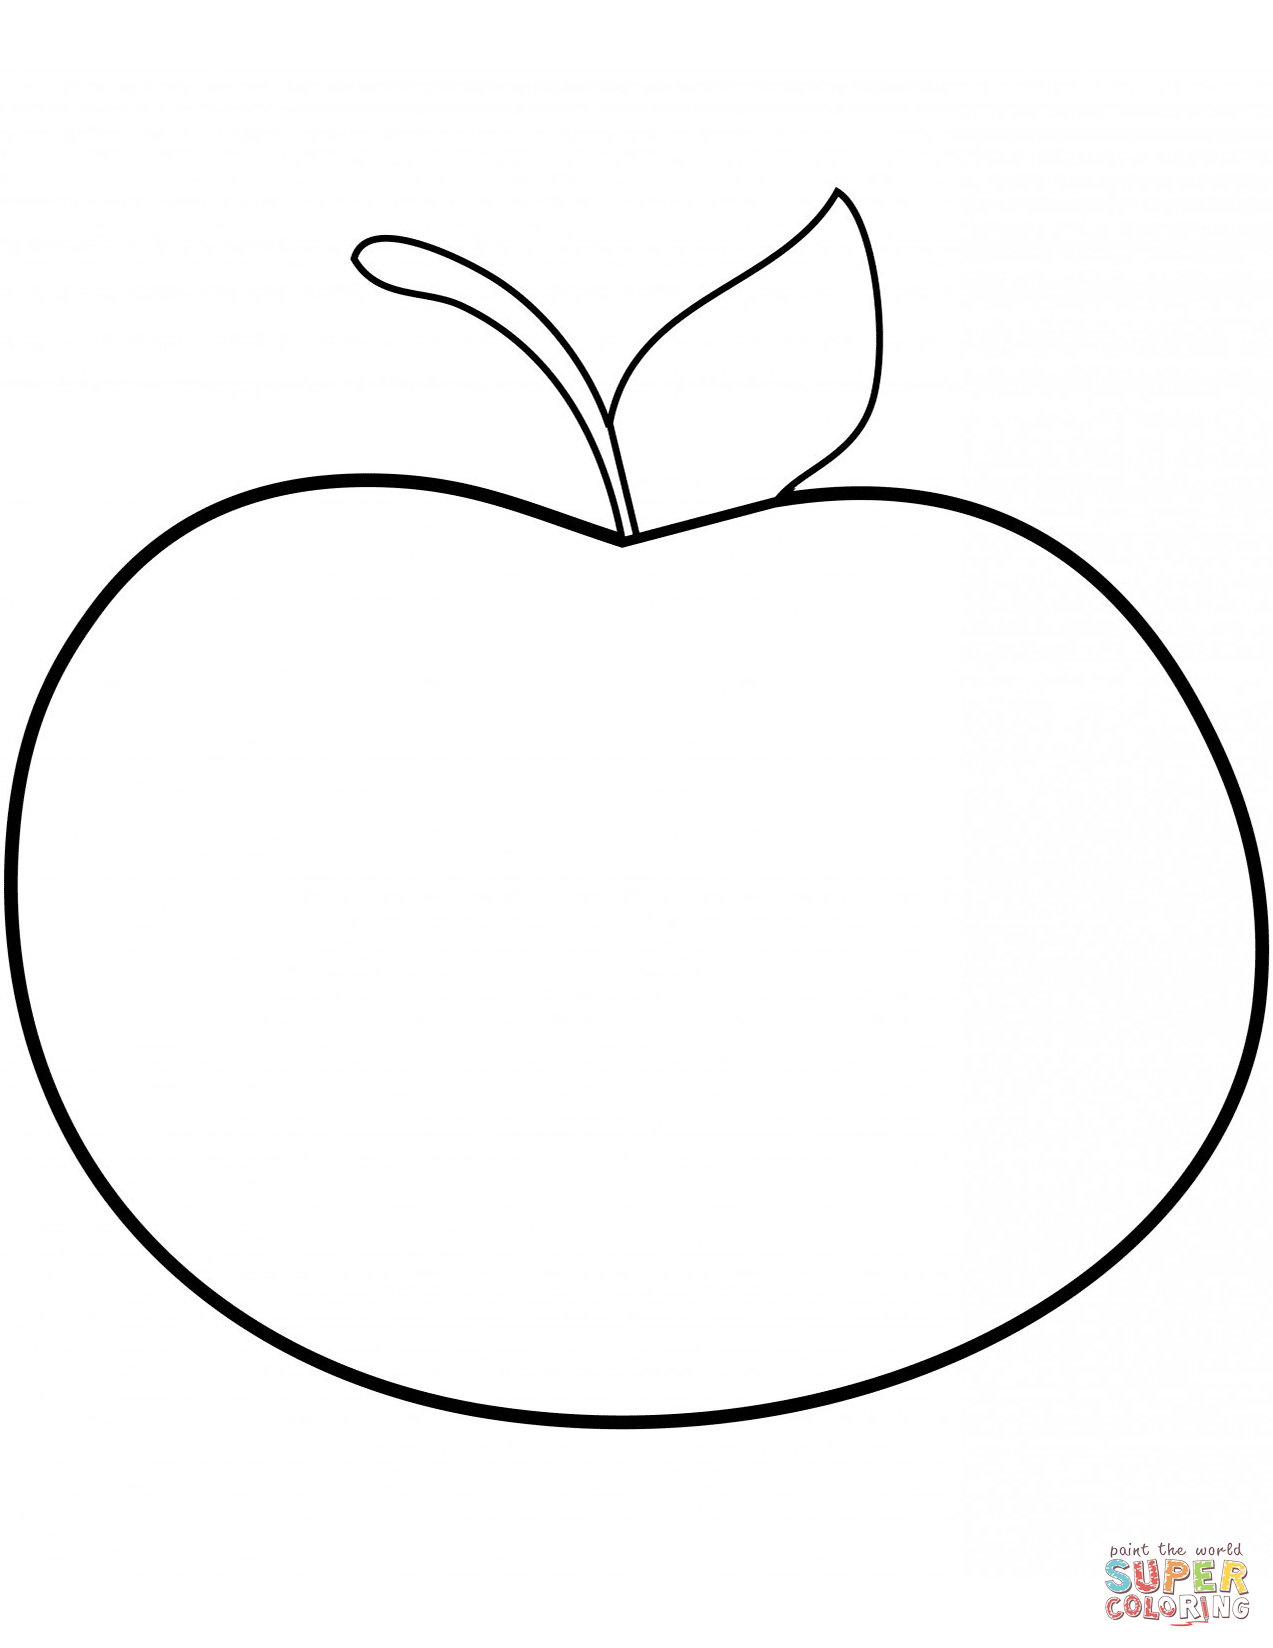 1273x1648 Apples Coloring Pages Free